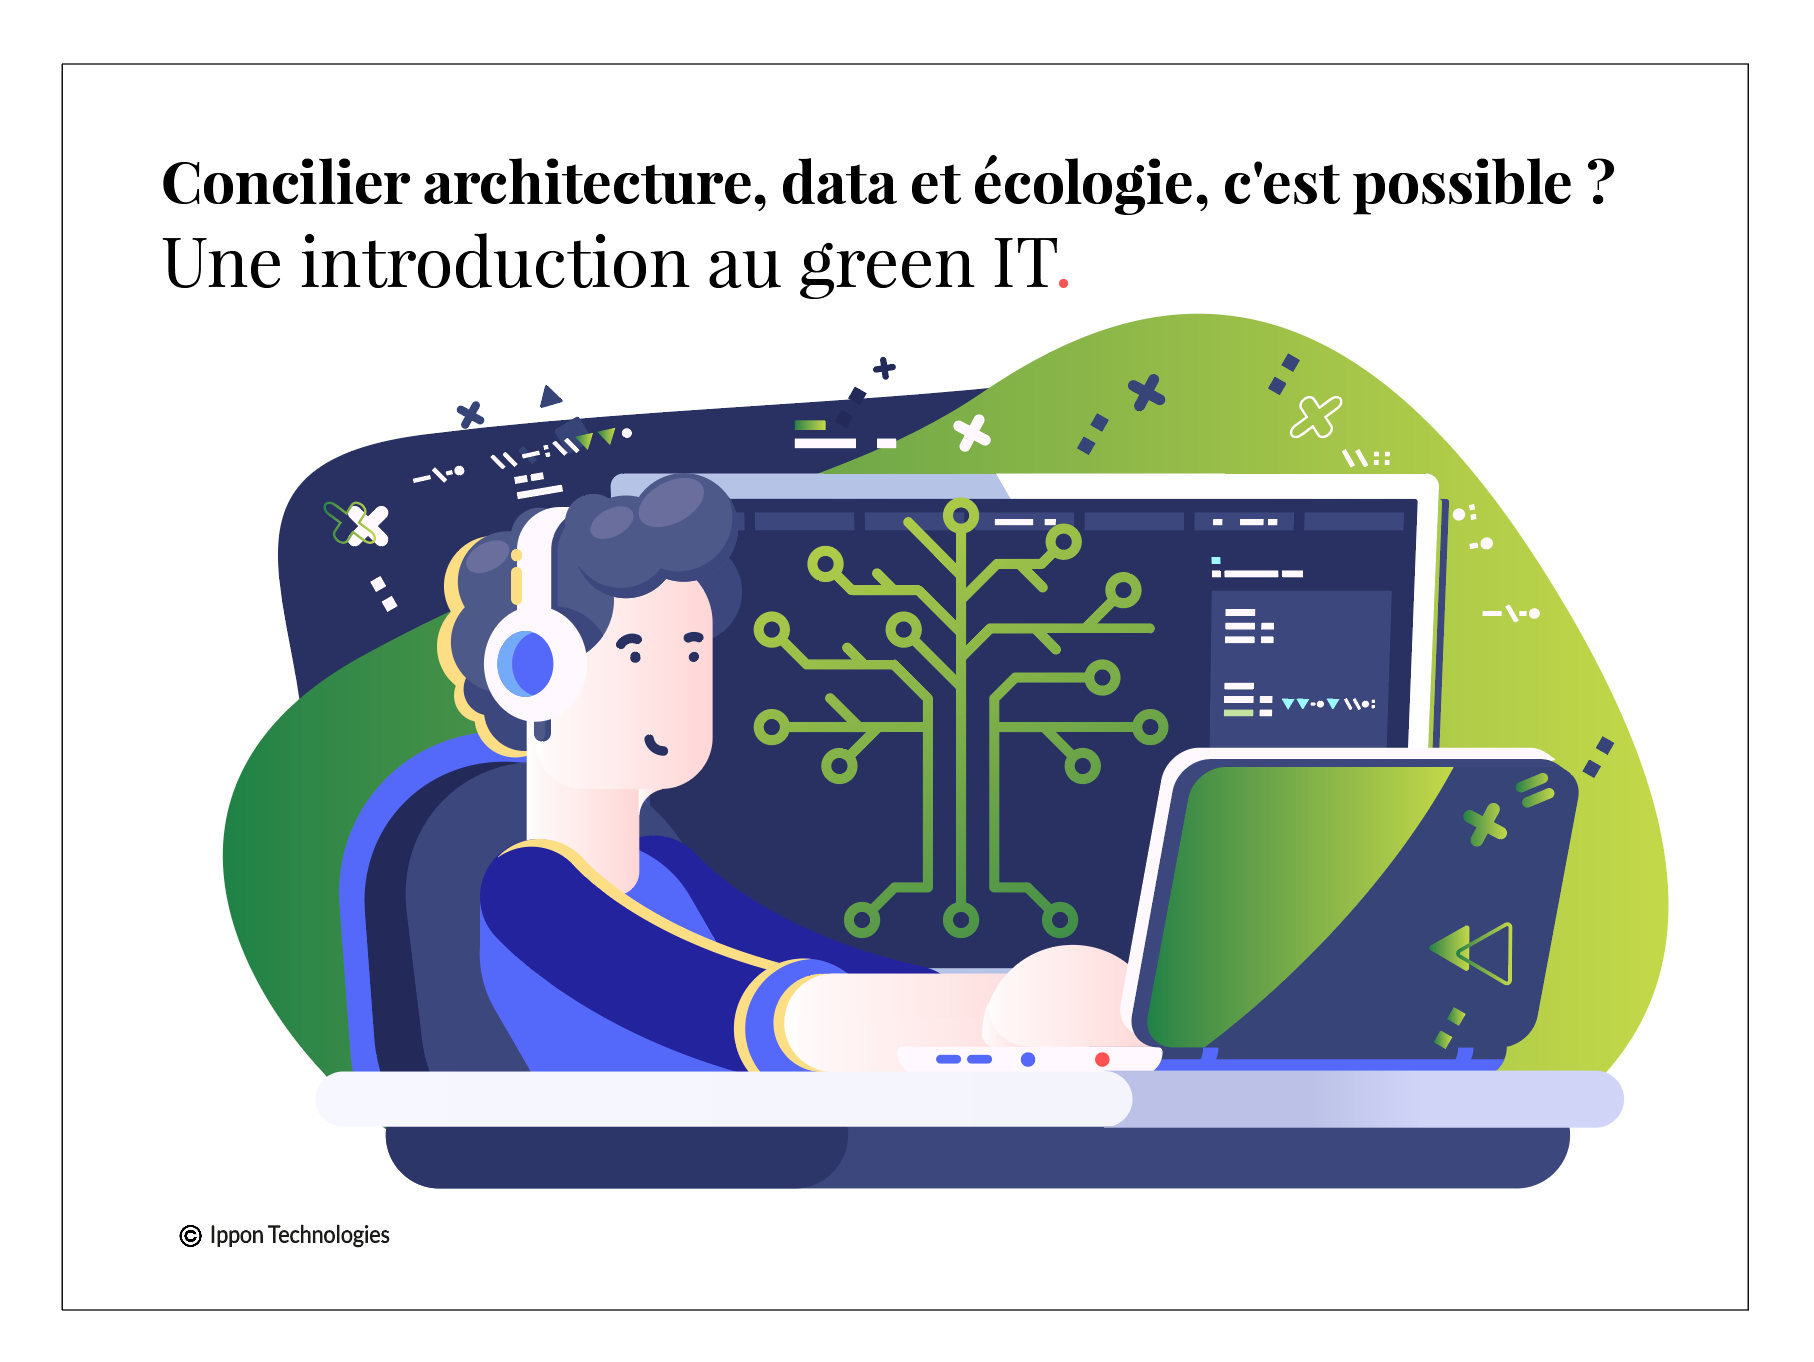 Concilier architecture, data et écologie, c'est possible ? Une introduction au green IT.